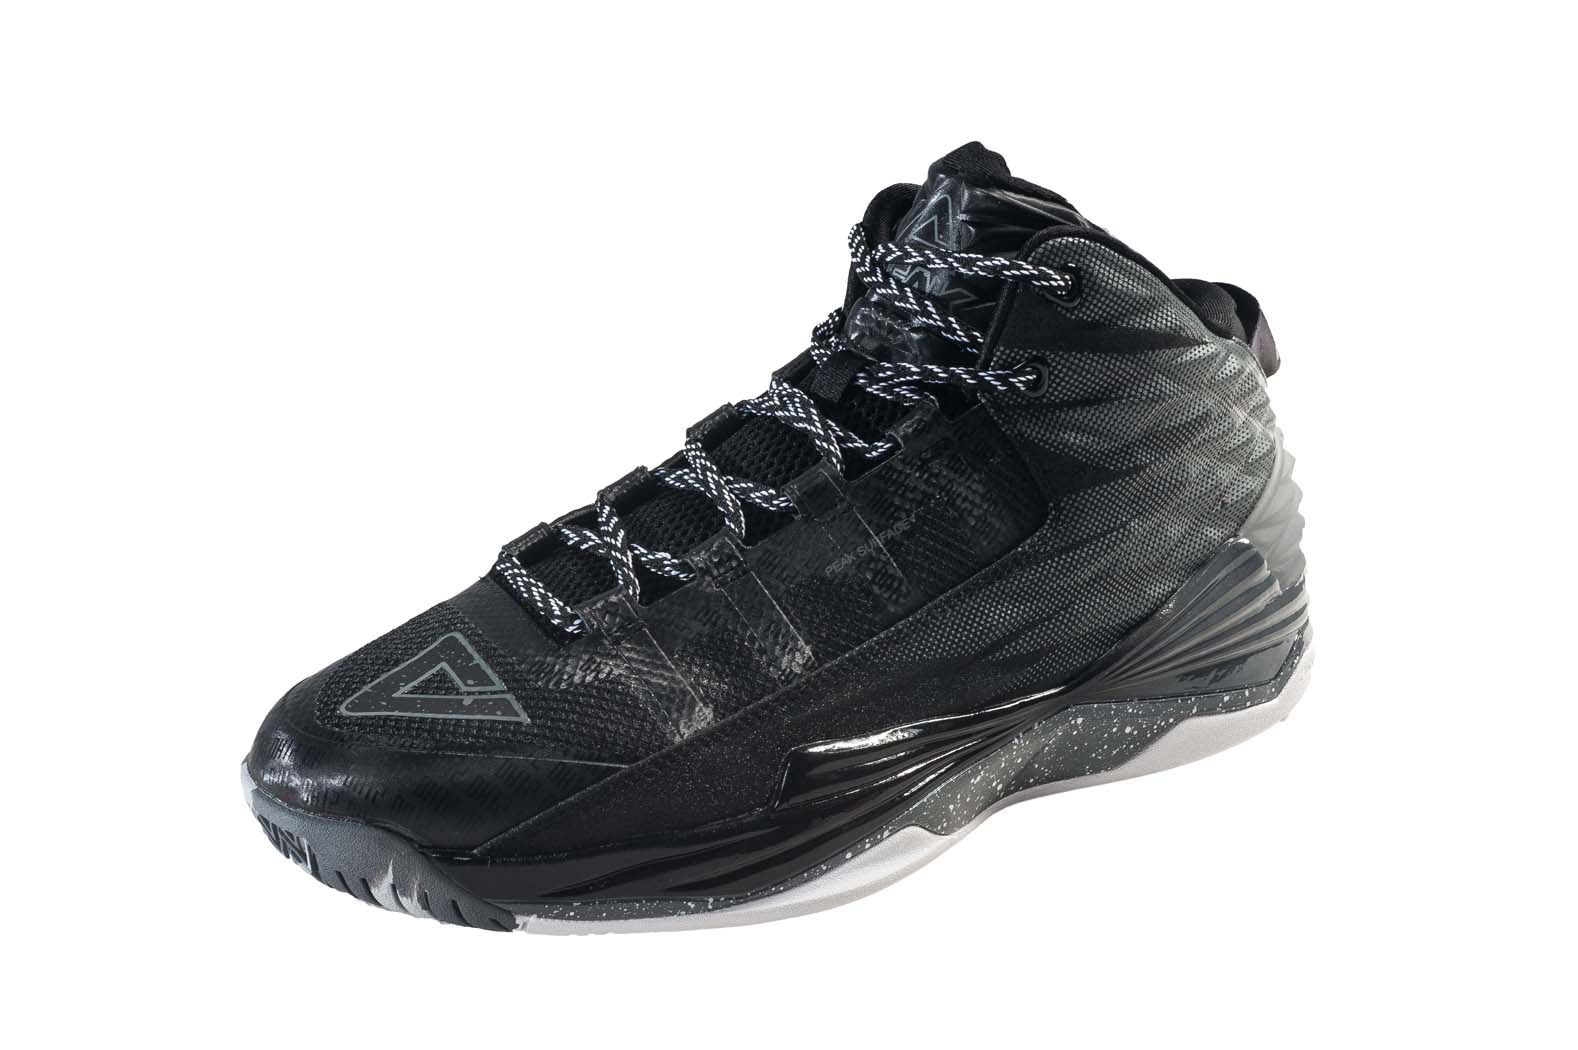 PEAK Basketballschuh Dwight Howard DH1